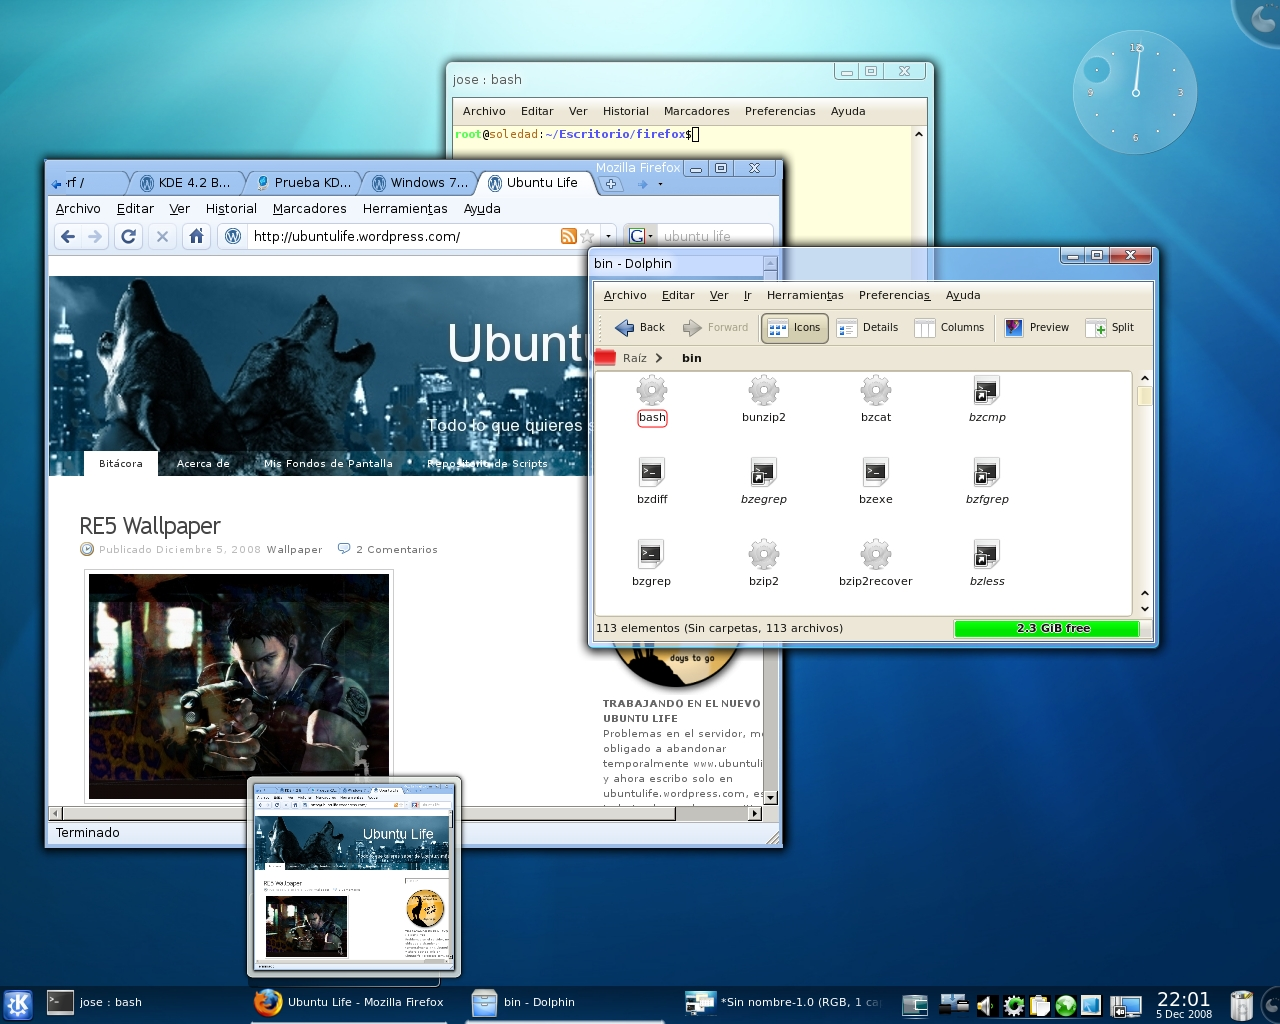 como descargar windows 7 ultimate gratis